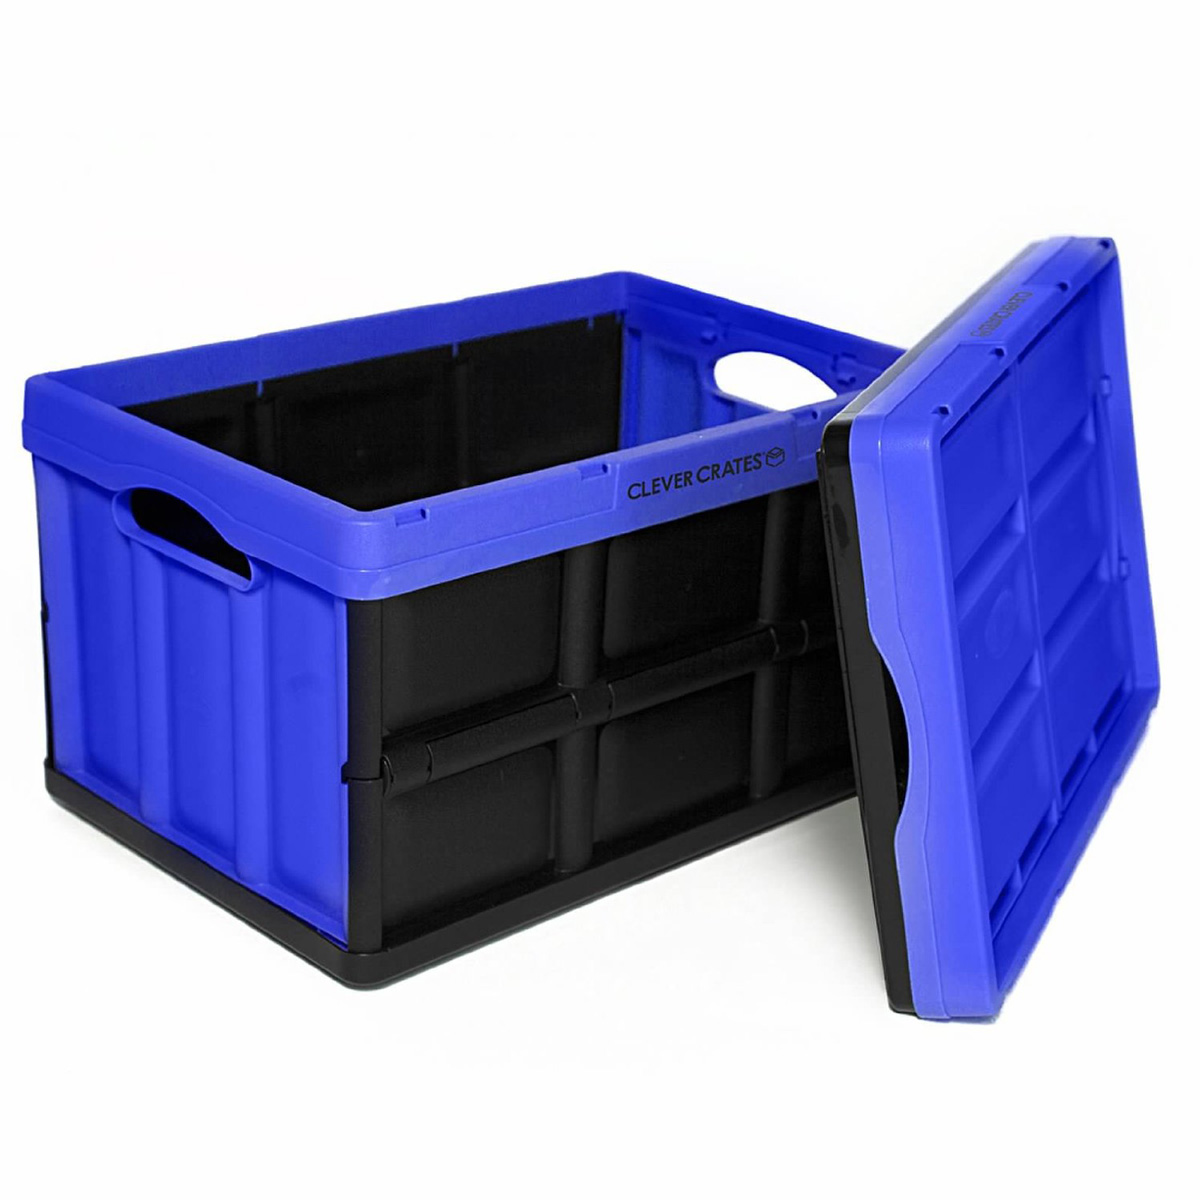 Clever Crates Collapsible All Purpose Utility Crates